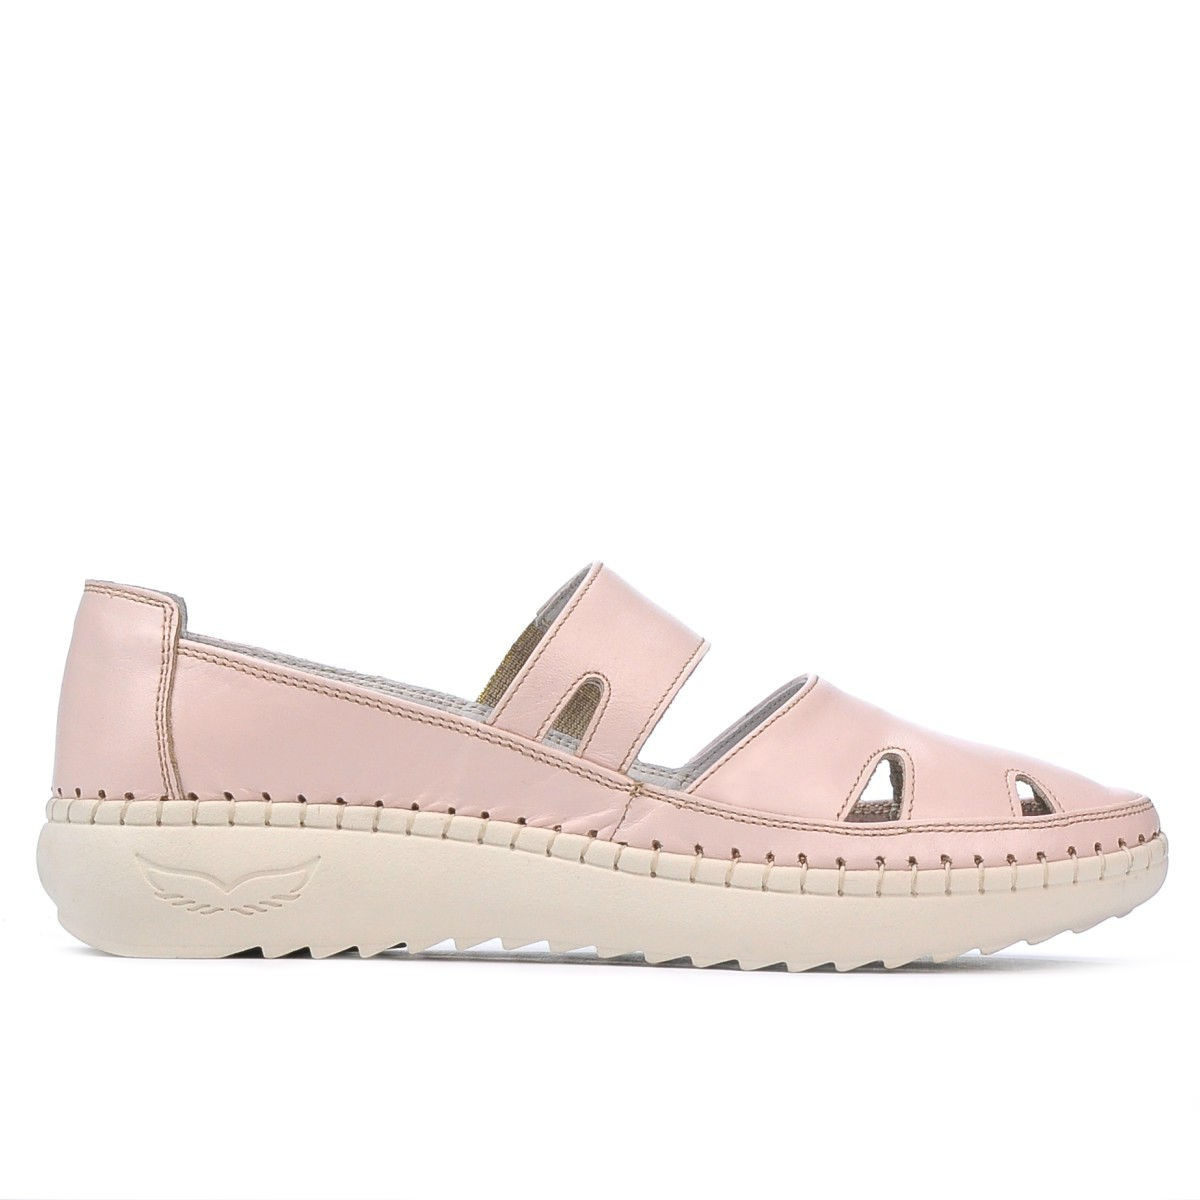 Women loafers, moccasins 6002 pudra